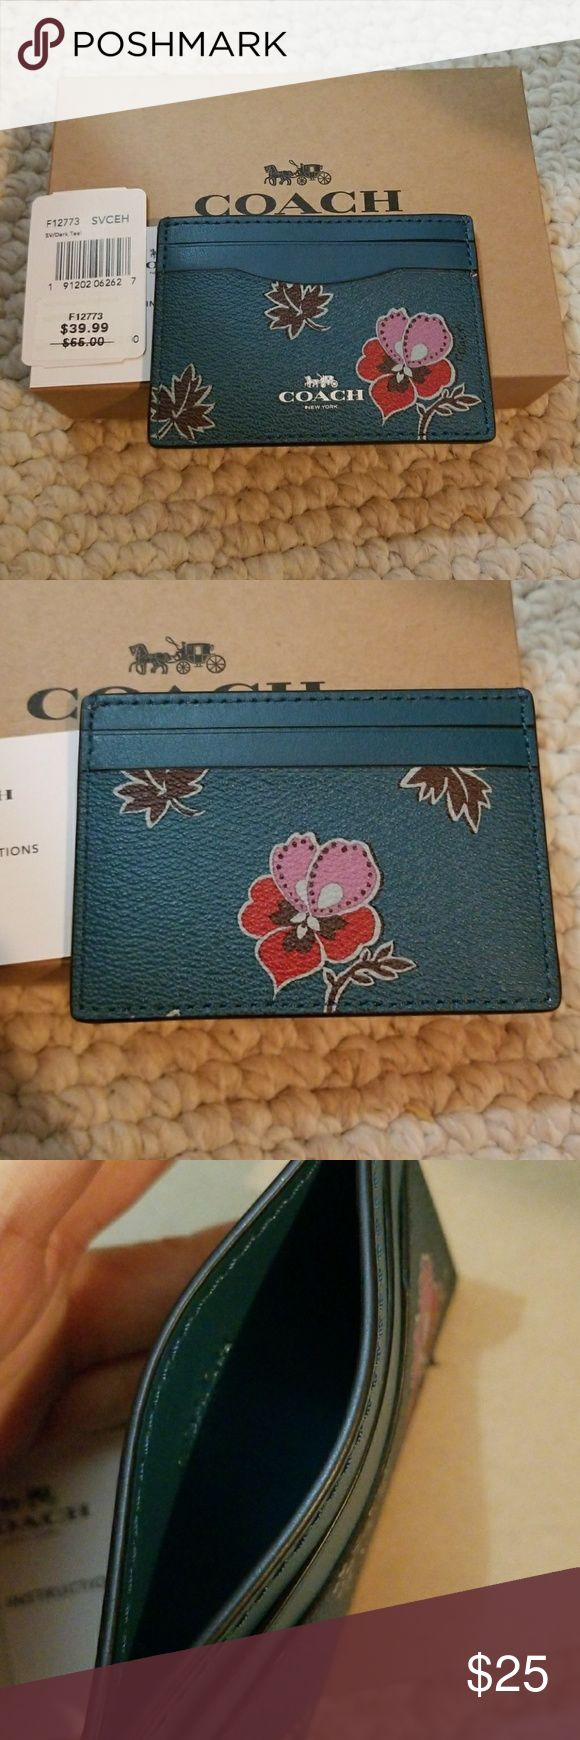 Coach Dark Teal Floral Credit Card Holder Brand new with tags. Come with free gift box. Willing to accept reasonable offers. I ship one business day. Coach Bags Wallets